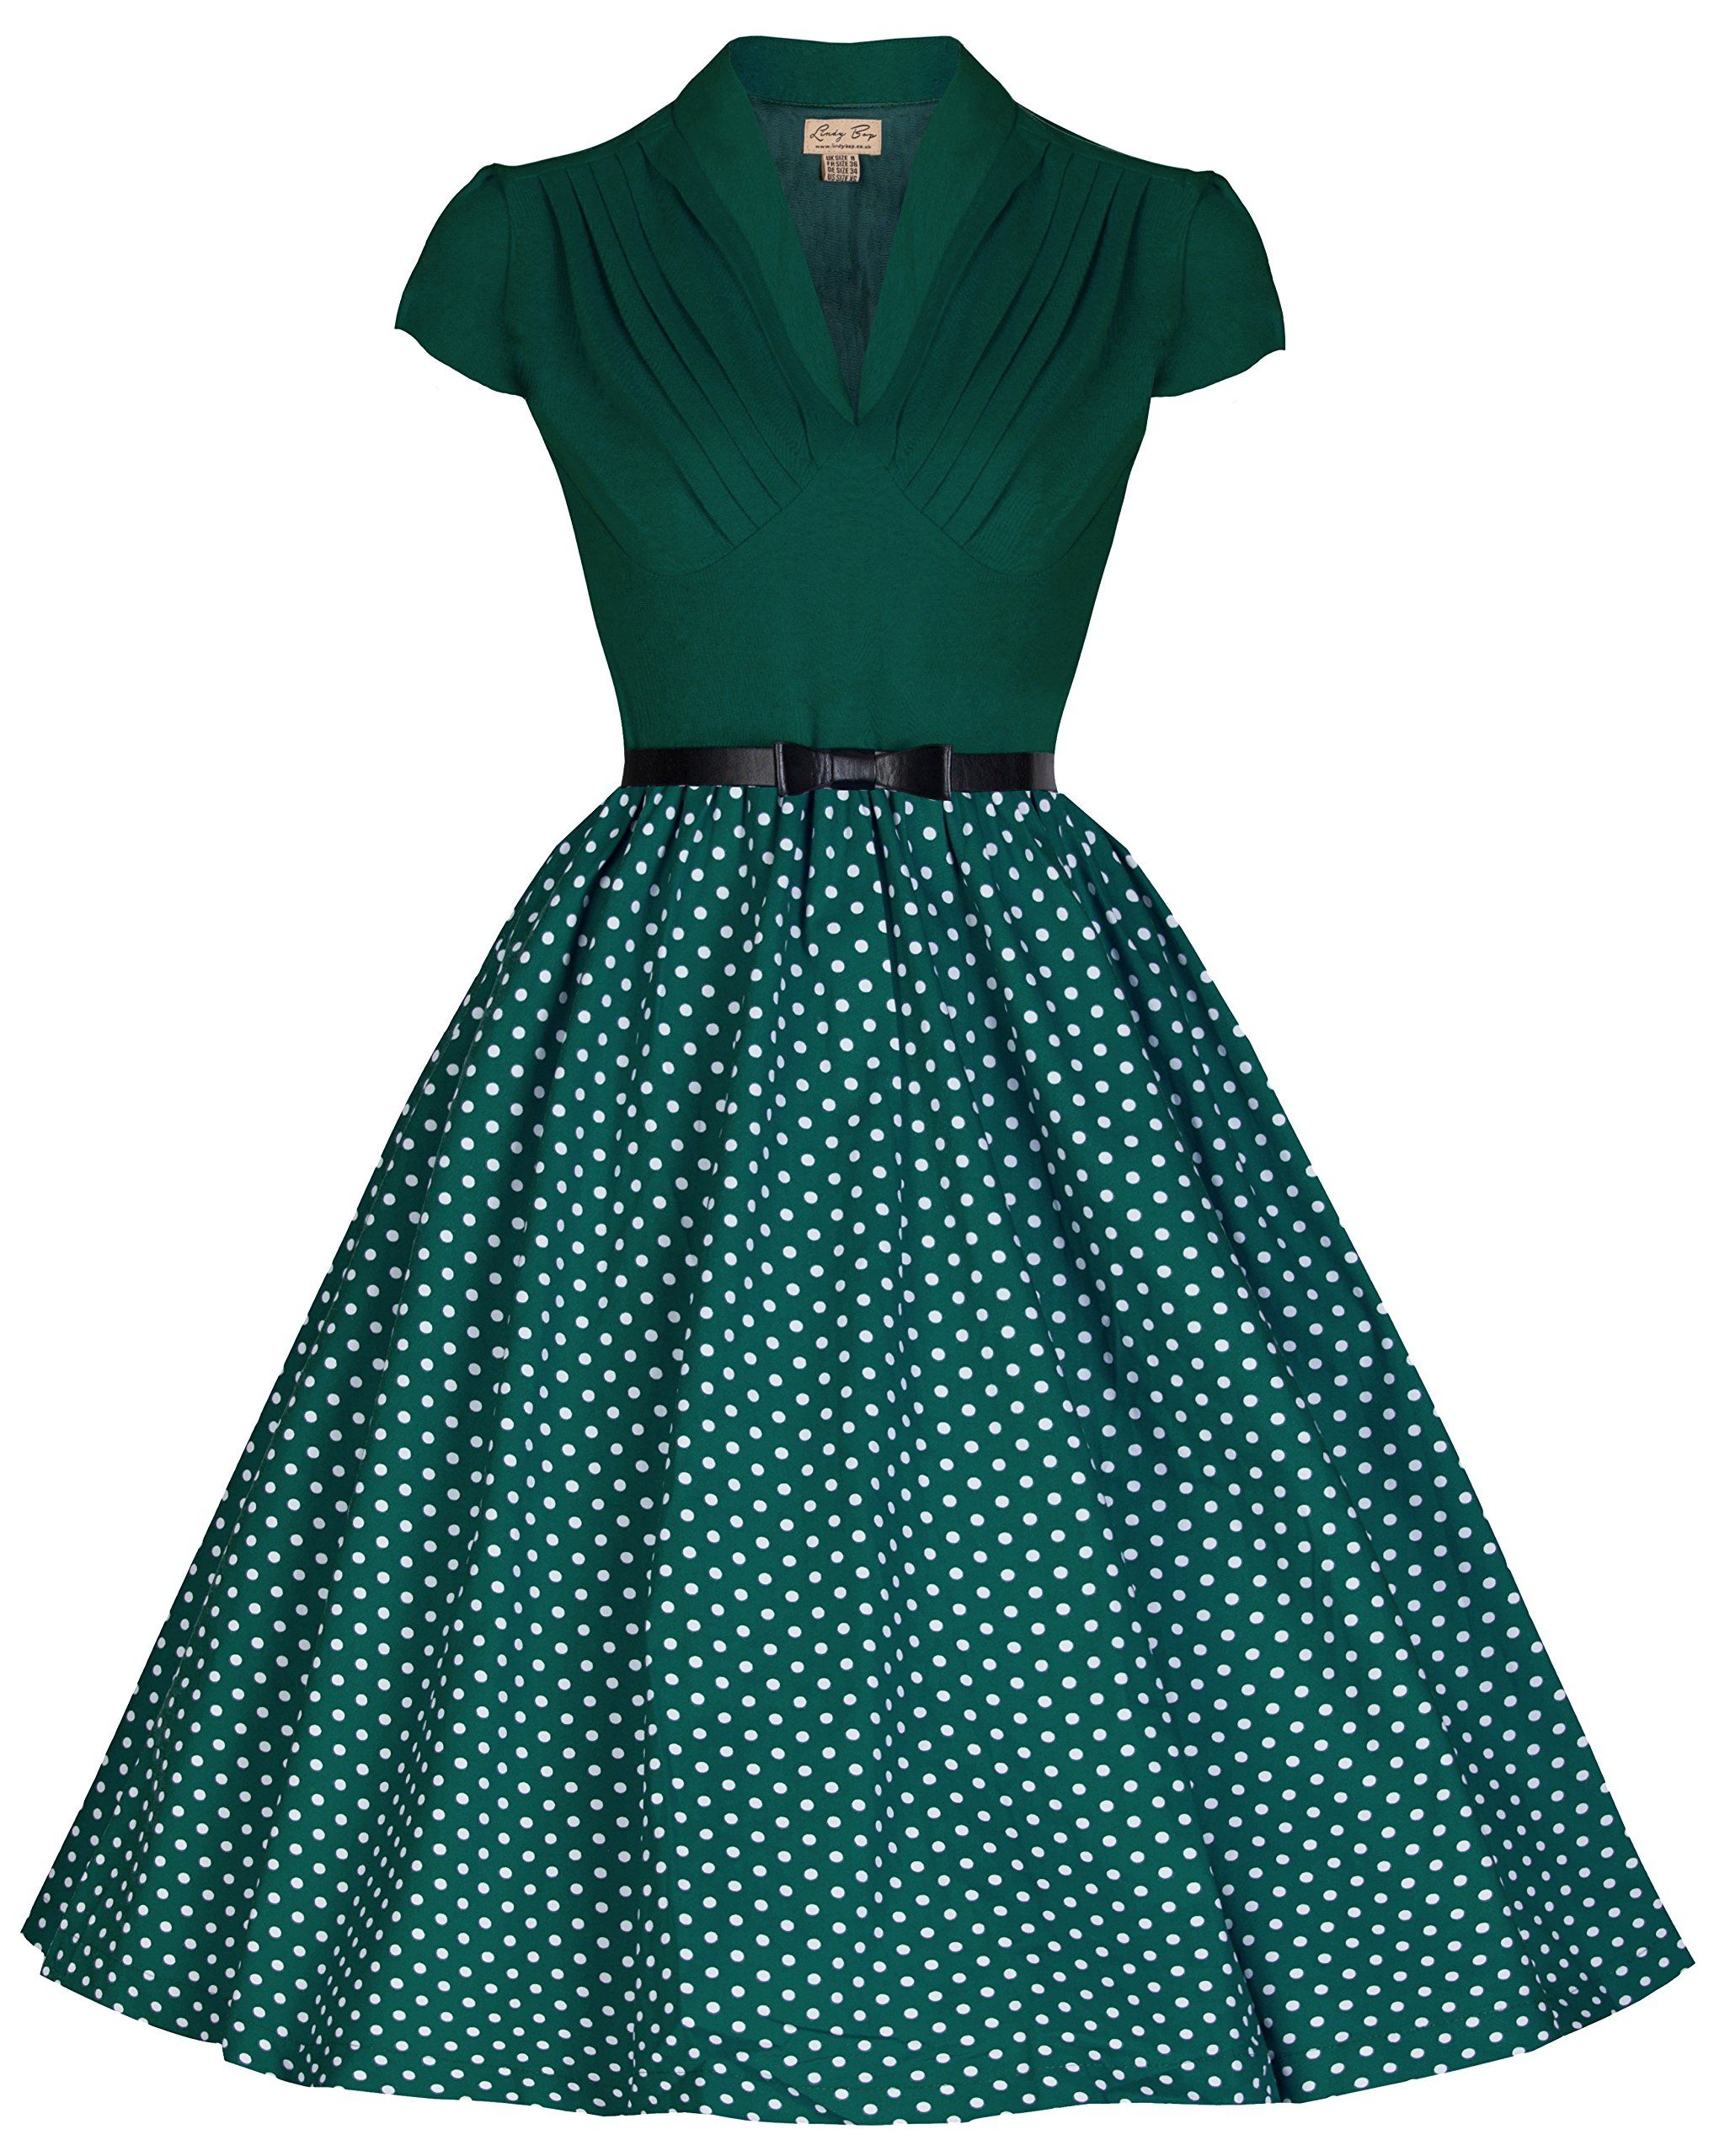 Lindy Bop Megan Flirty Fun 50s Vintage Inspired Polka Party Dress ...